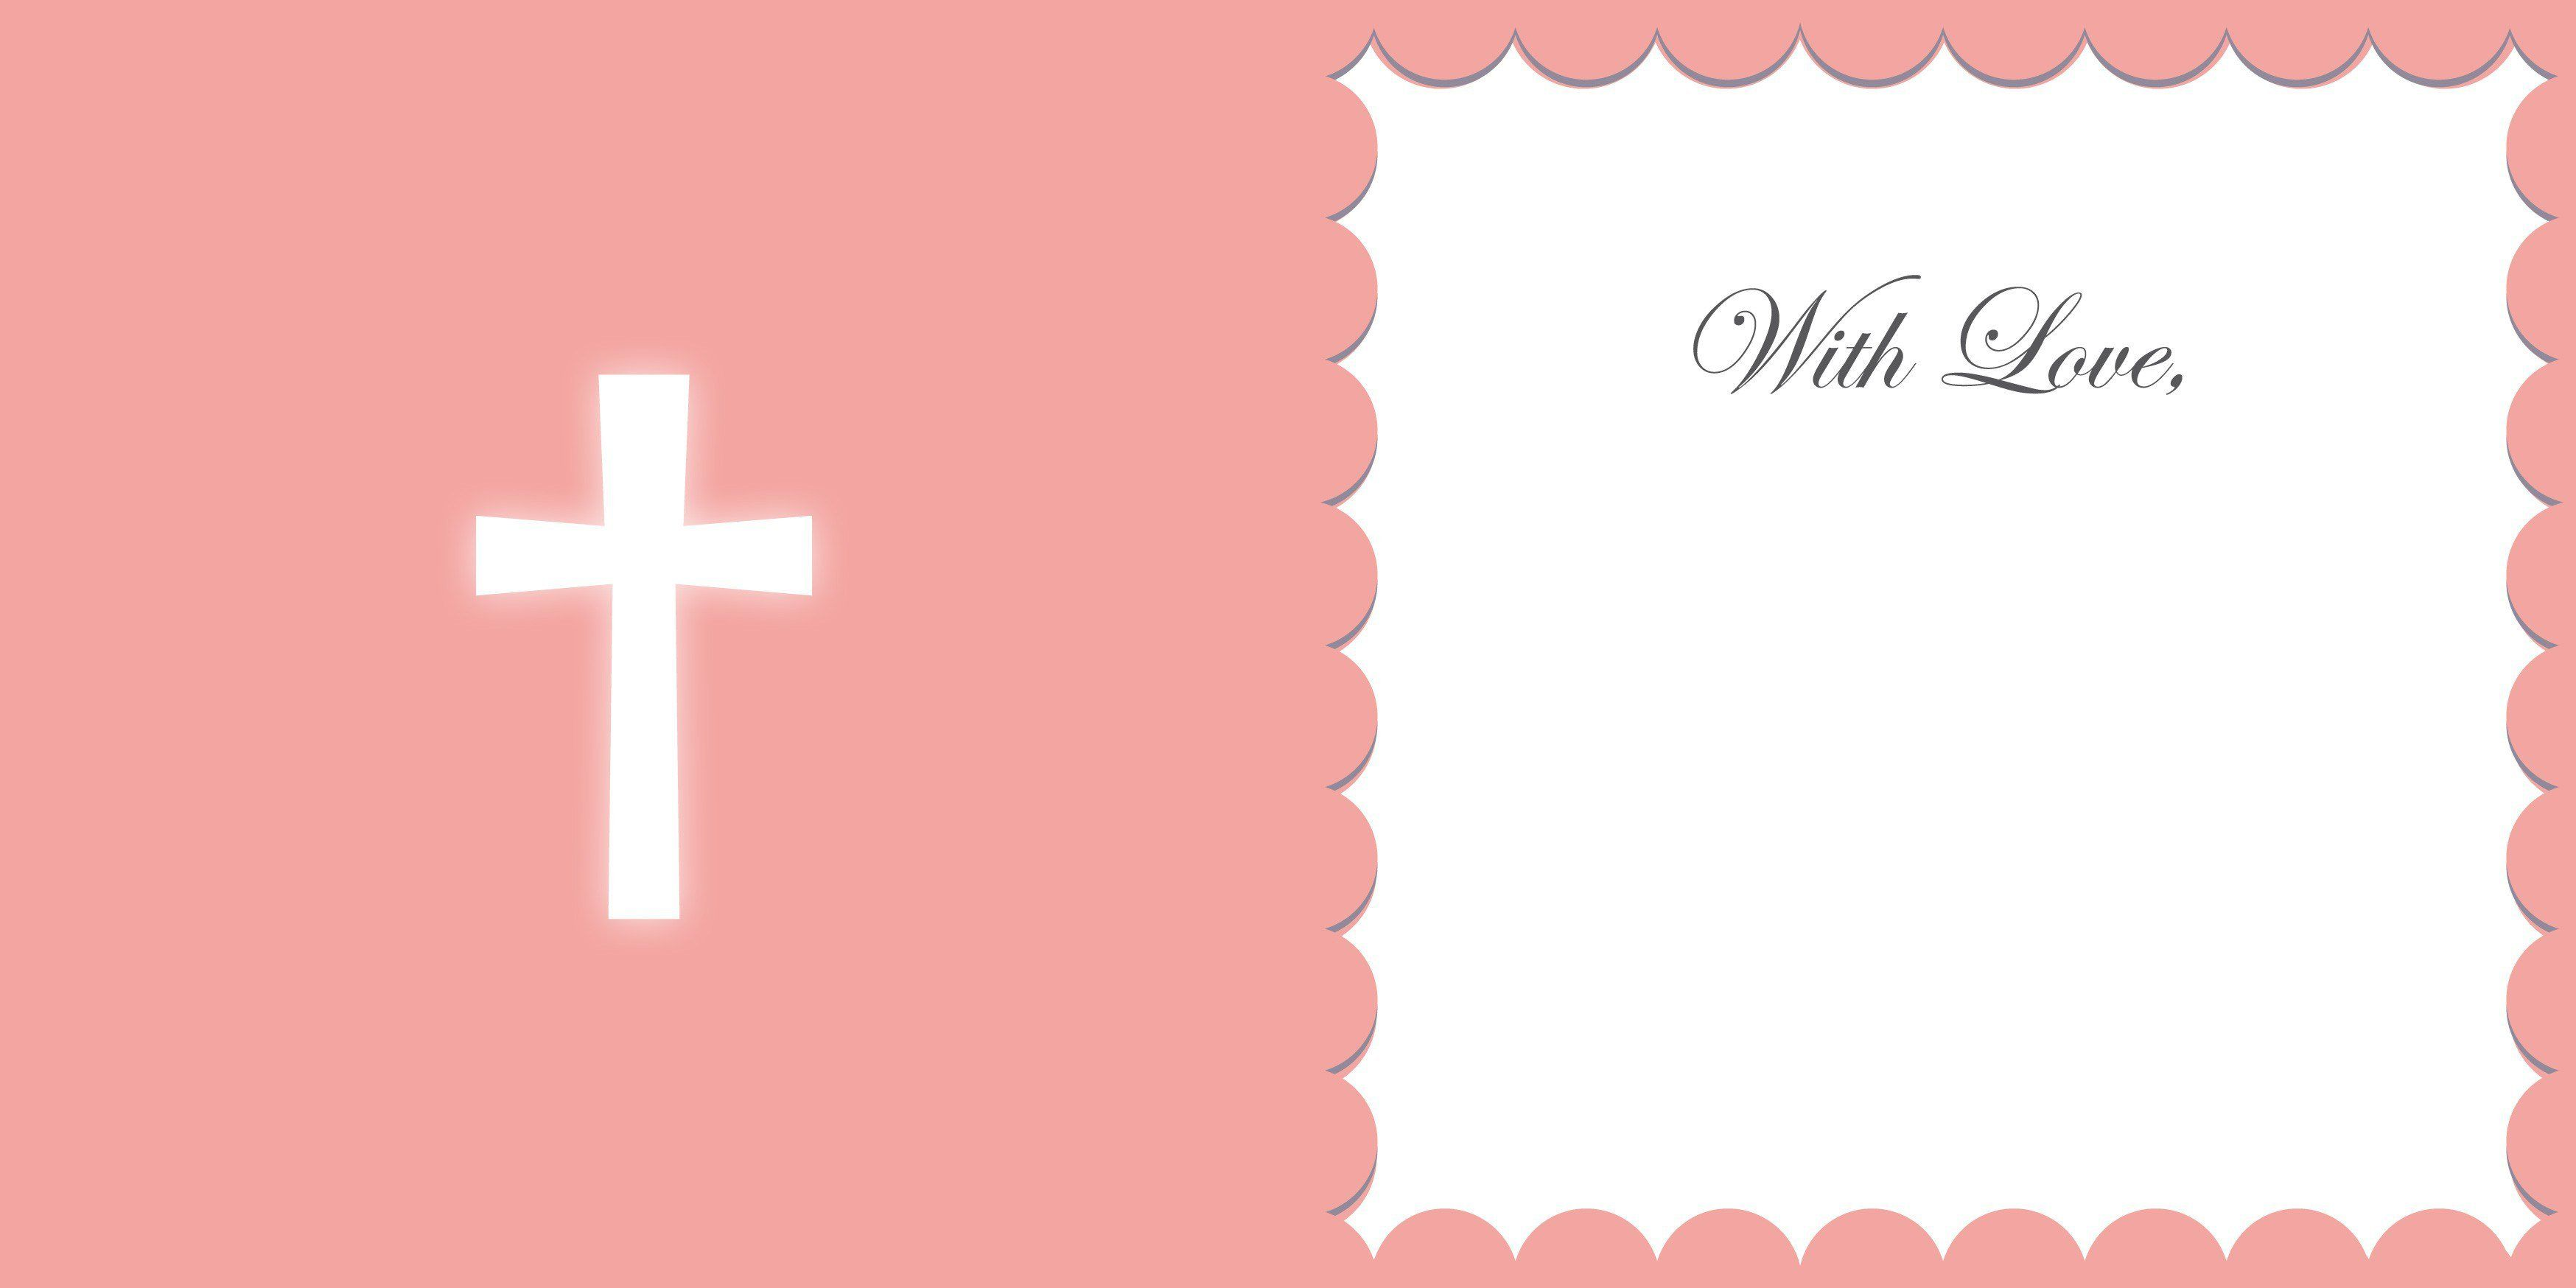 Baptism Invitations : Baptism Invitation Template   Invitations Design  Inspiration   Invitations Design Inspiration